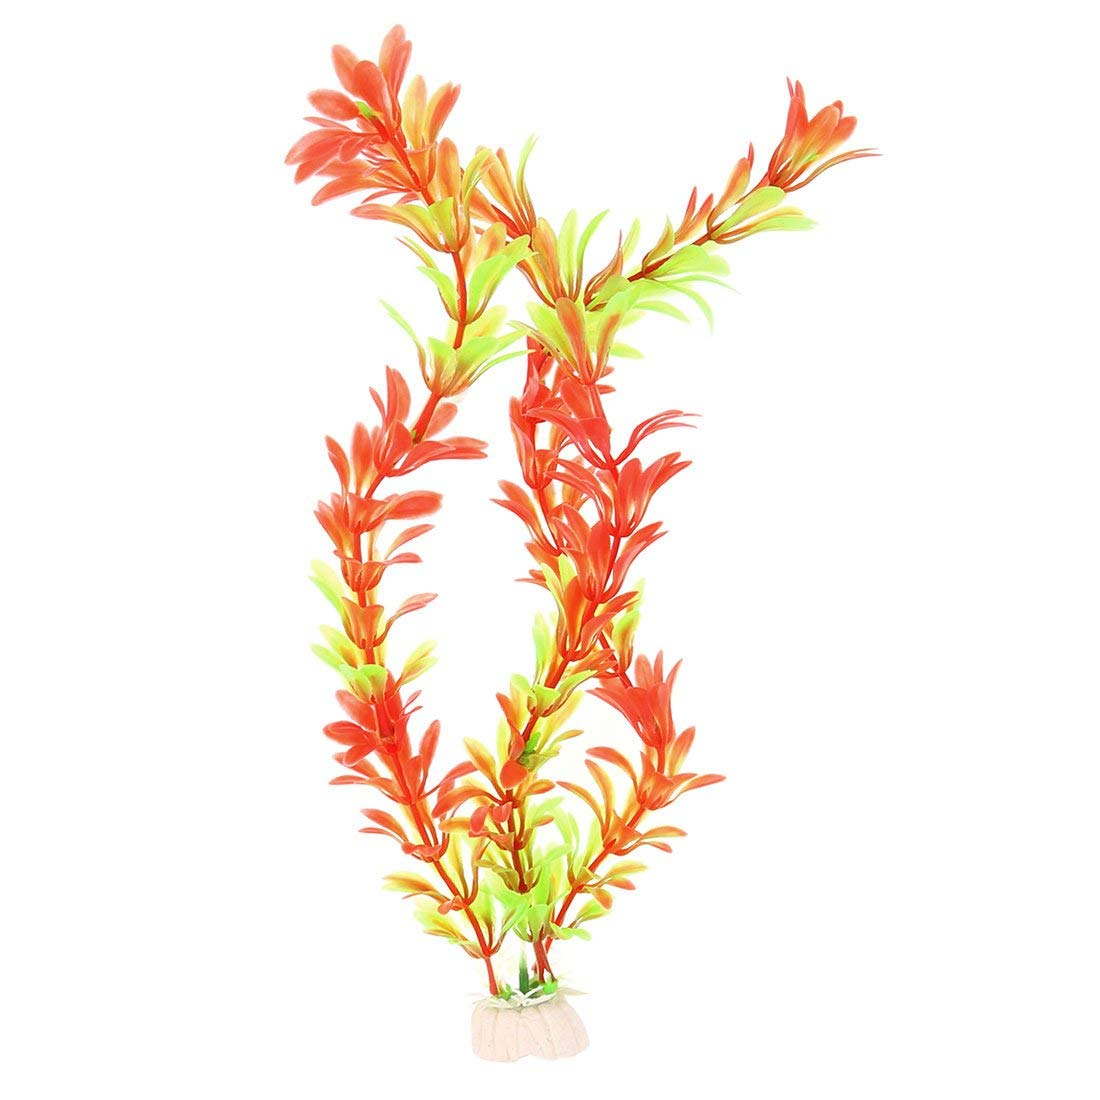 Ceramic Base Plastic Aquarium Ornament Emulational Plant 2 Pcs Green orange